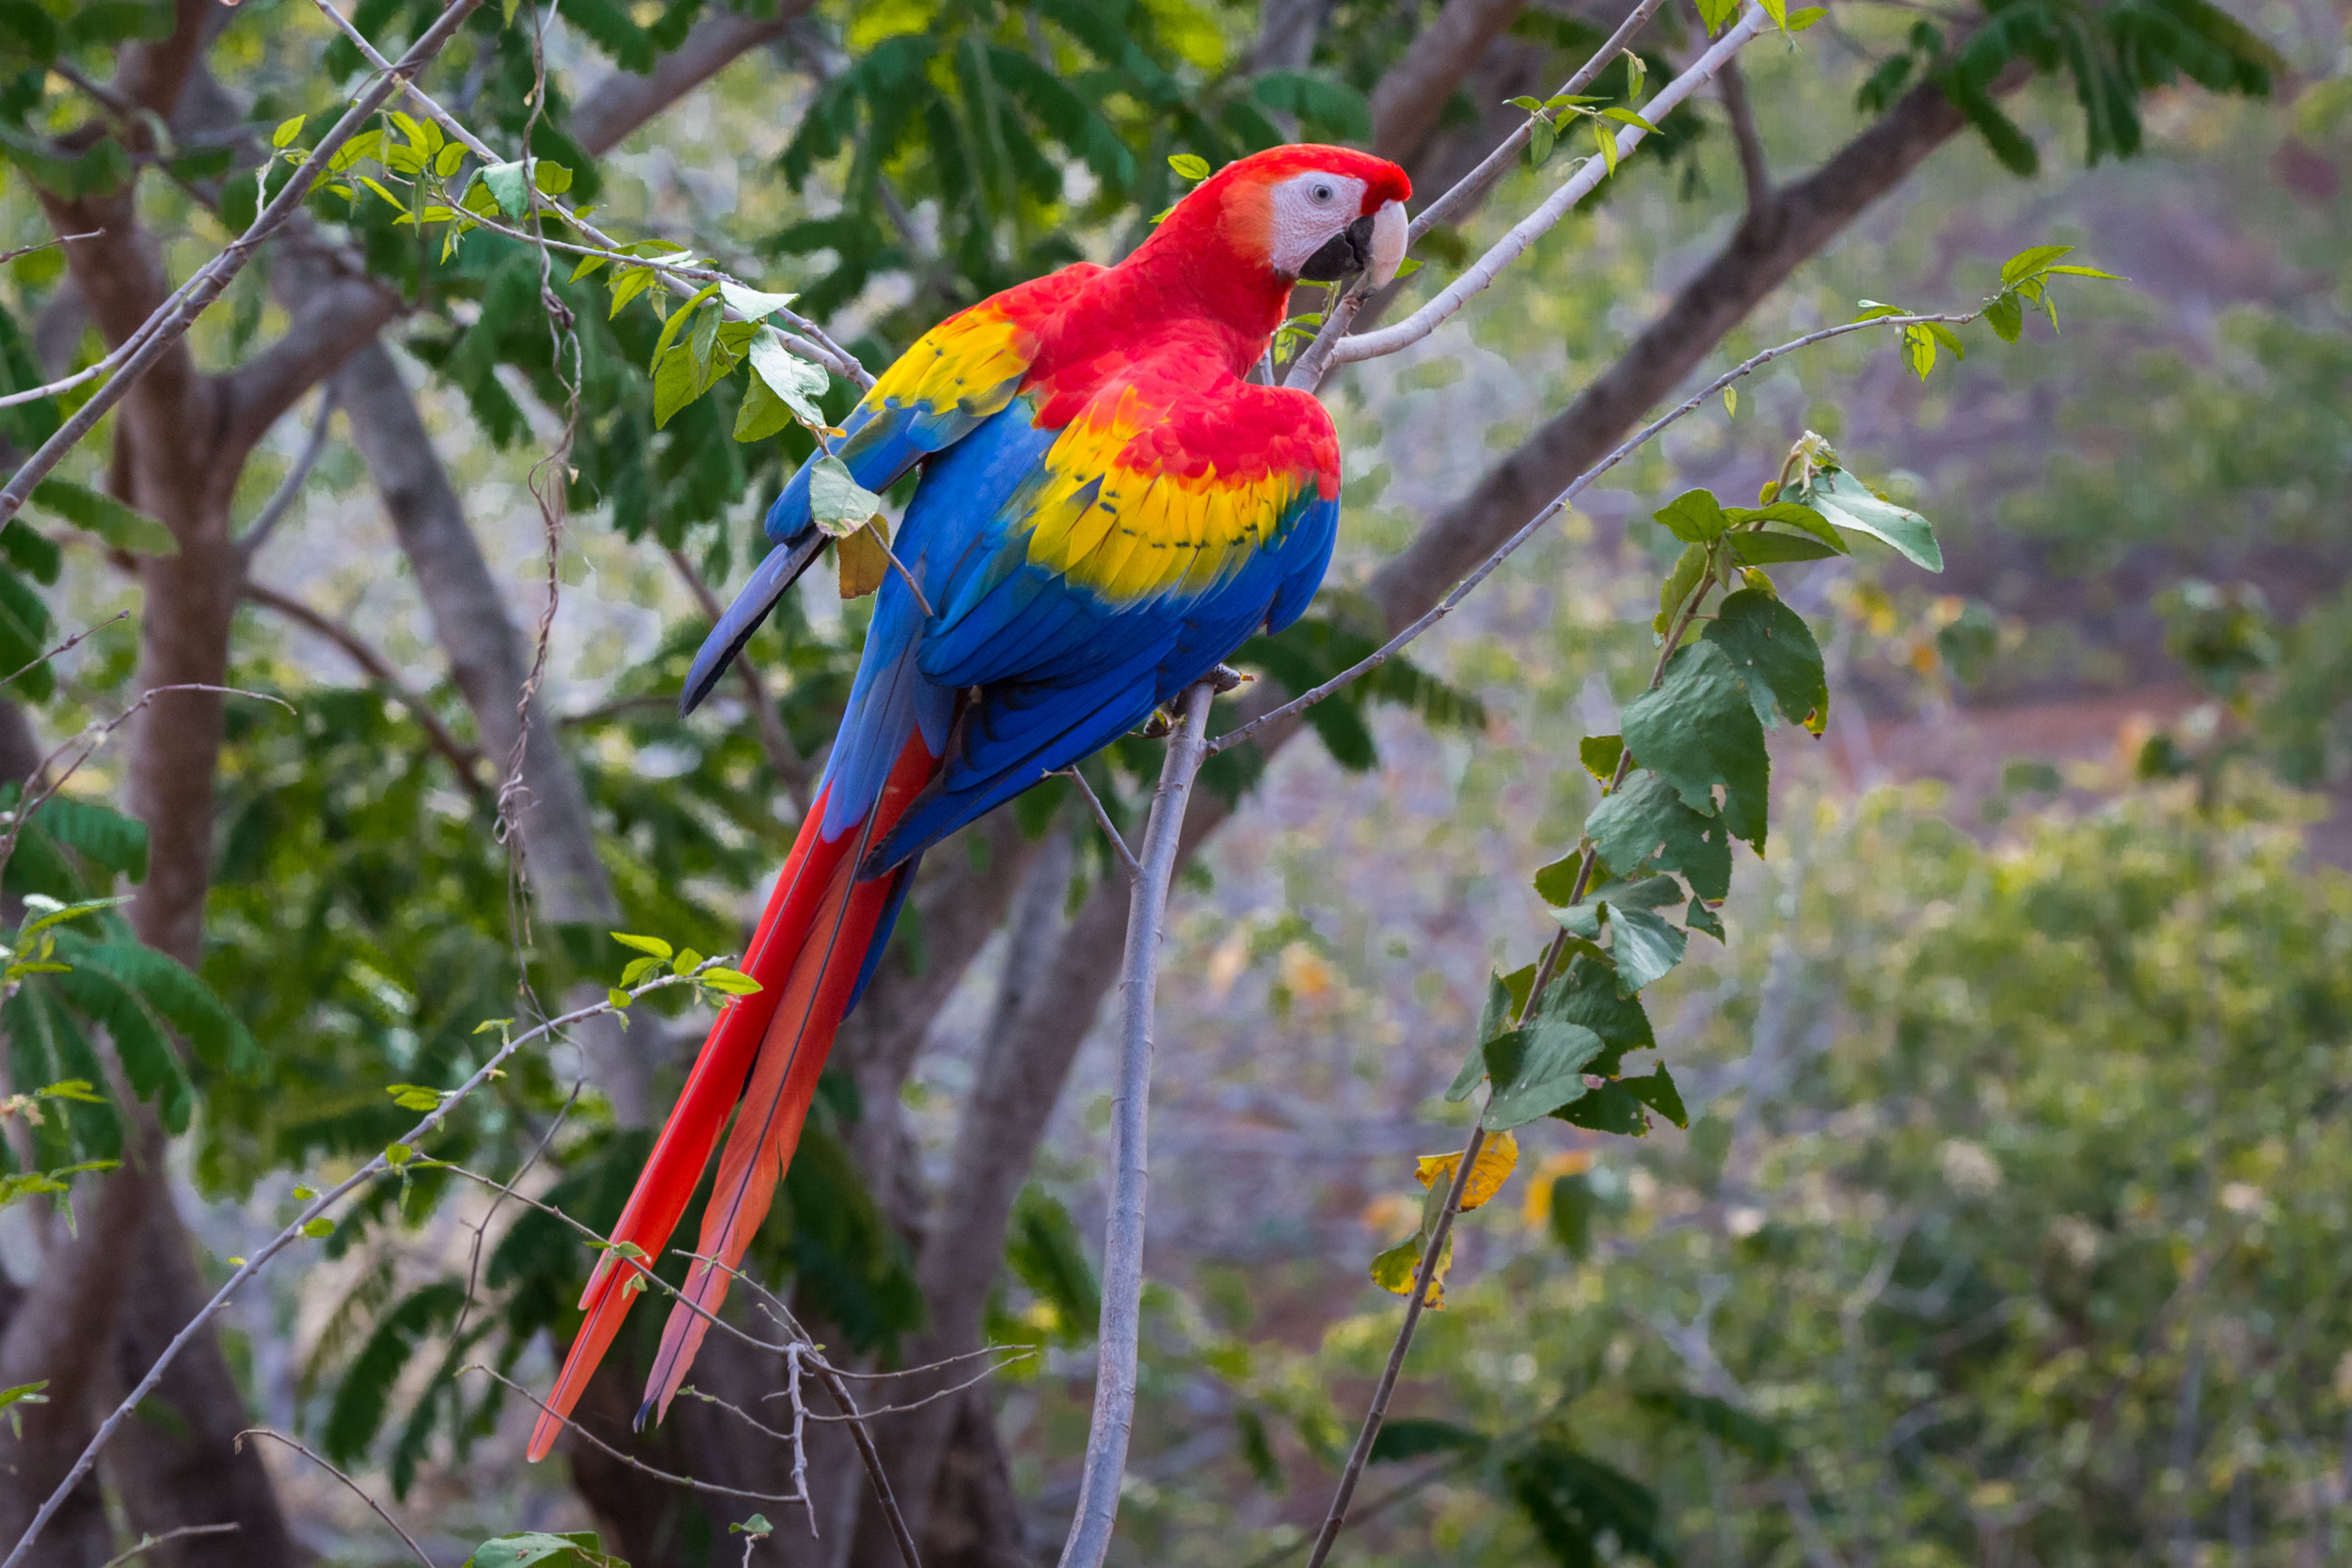 Our Team - is made up of international specialists in avian health & husbandry, alongside biologists & zoologists with combined experience of over 40 years working with parrots and macaws. See our staff & volunteers in action!